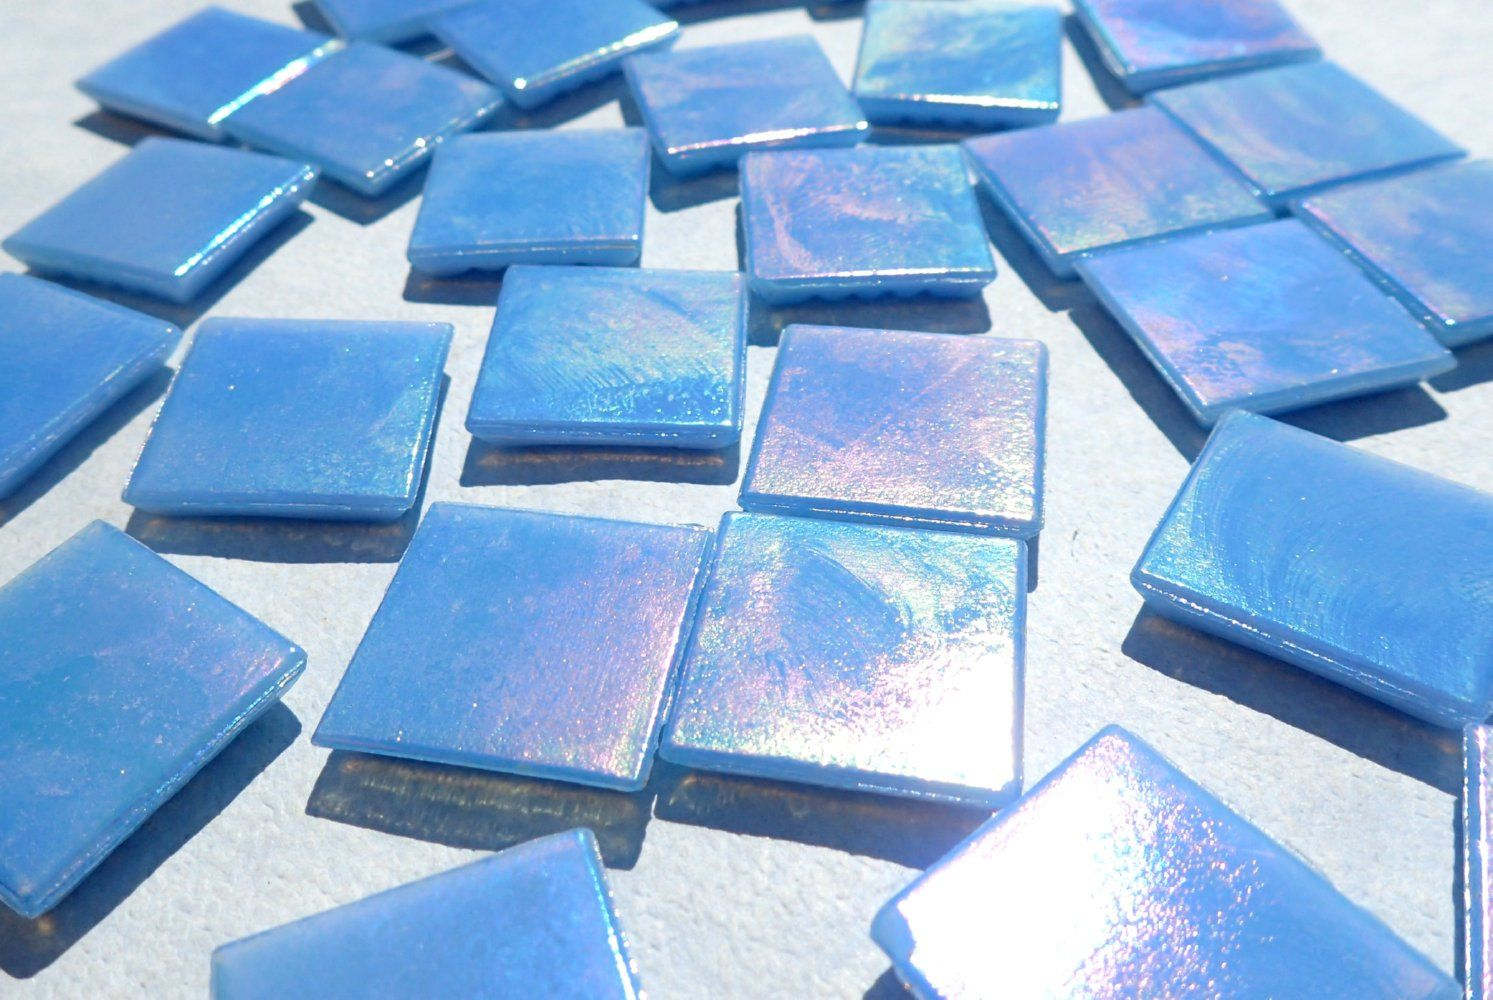 These square tiles are an opaque light blue with an iridescent ...